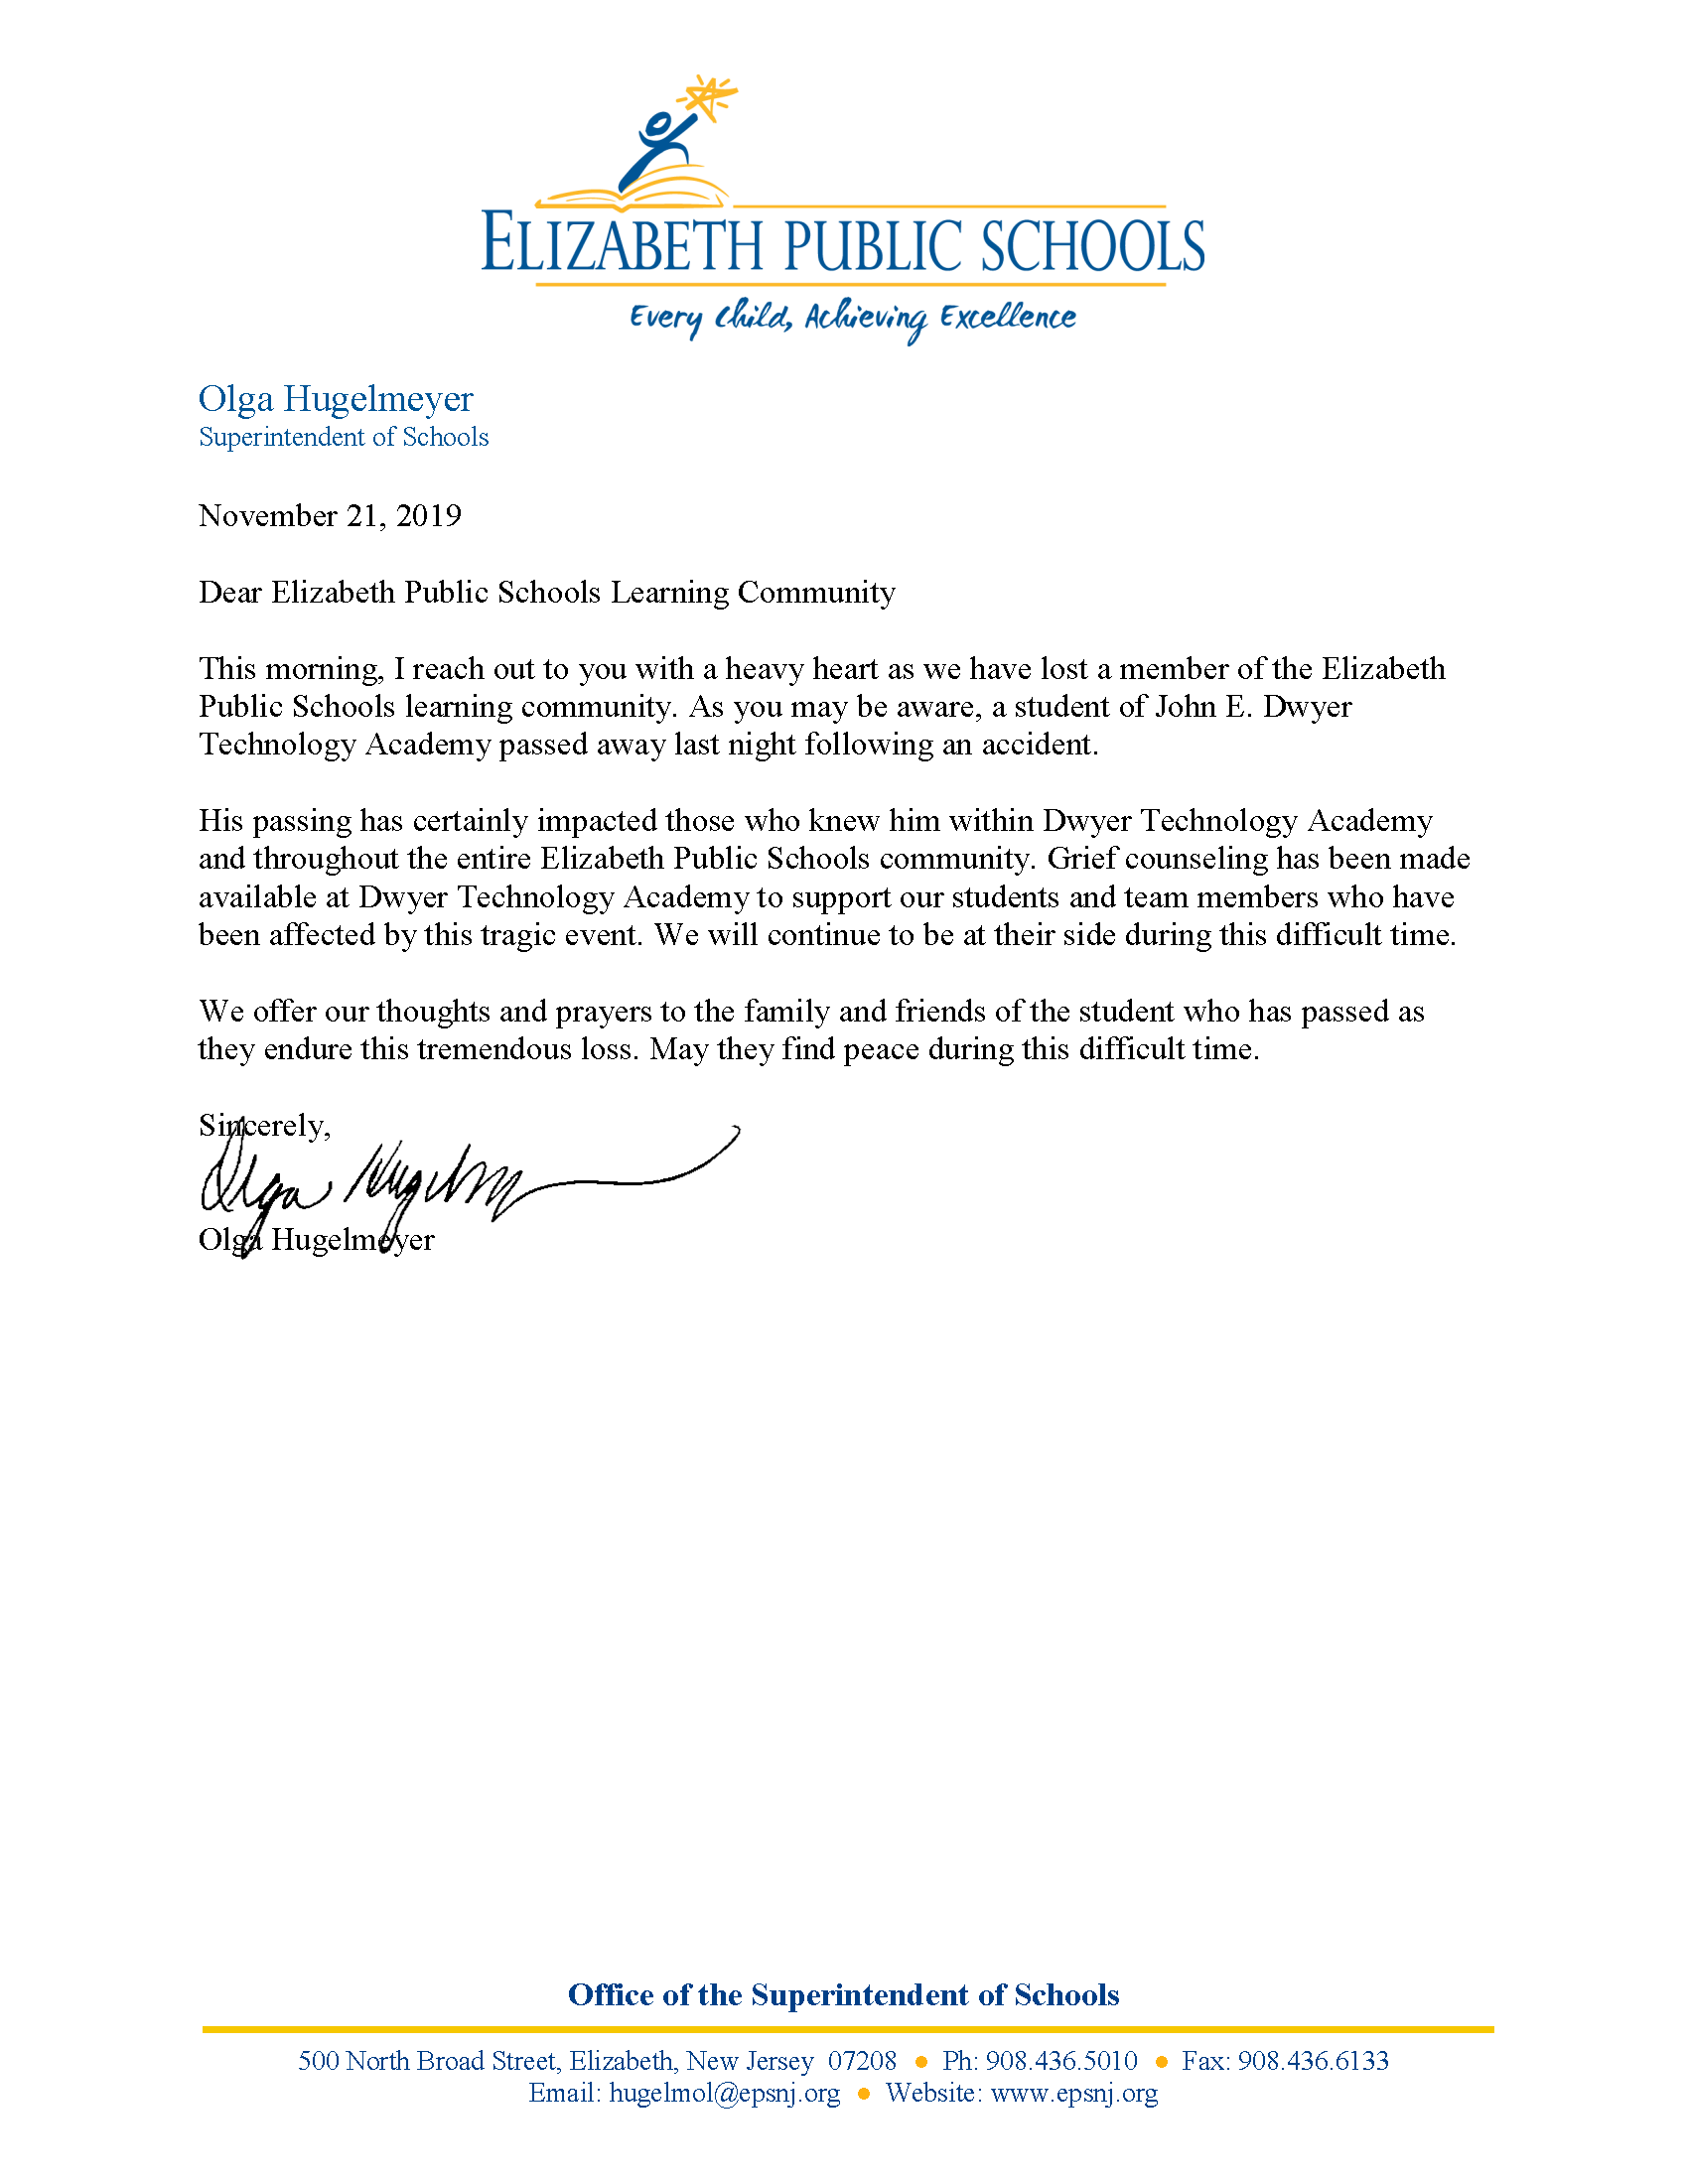 Letter to EPS Community About the Passing of Dwyer Technology Academy Student